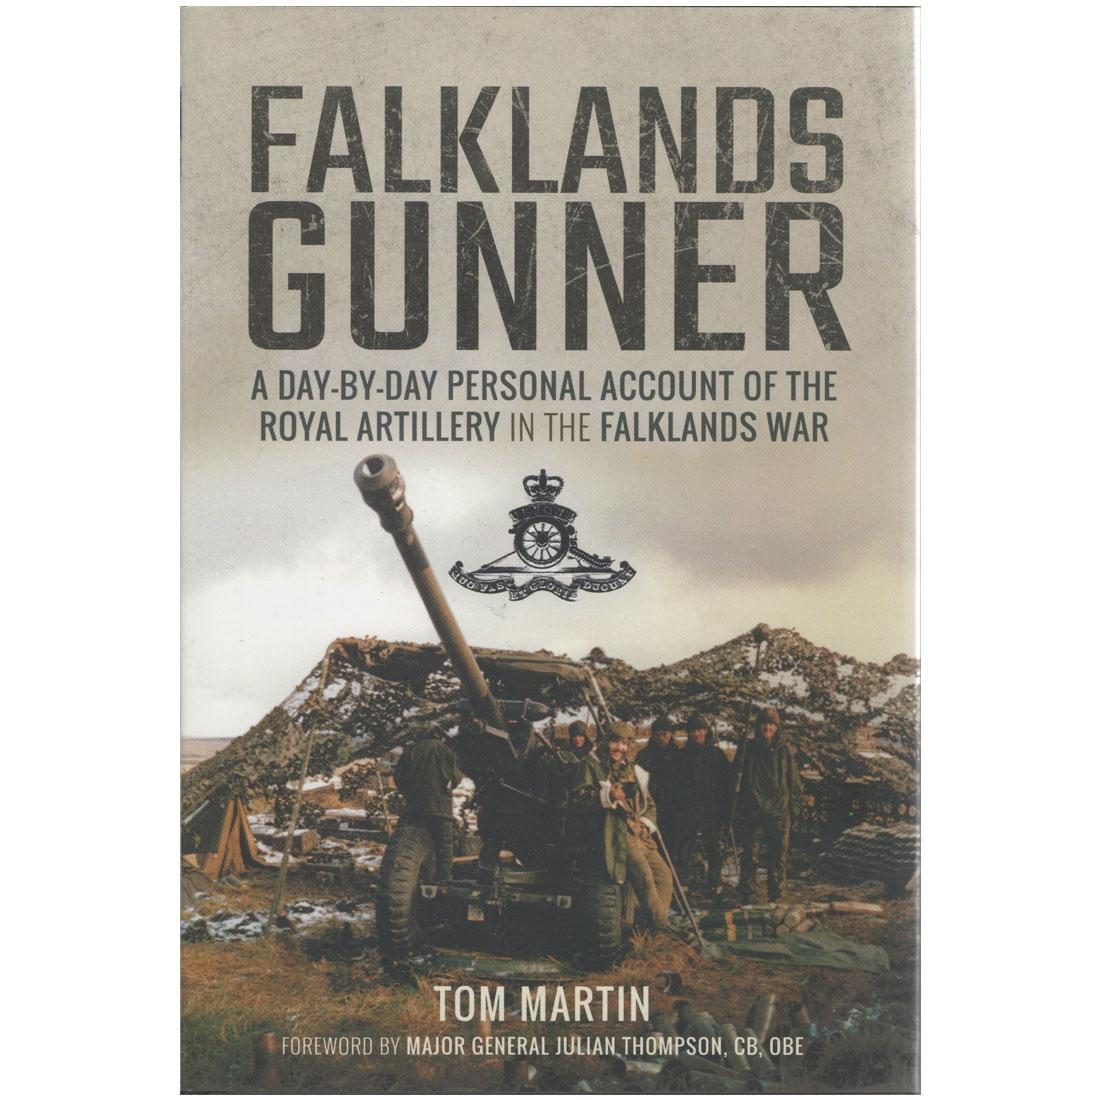 Falklands Gunner by Tom Martin (Book)